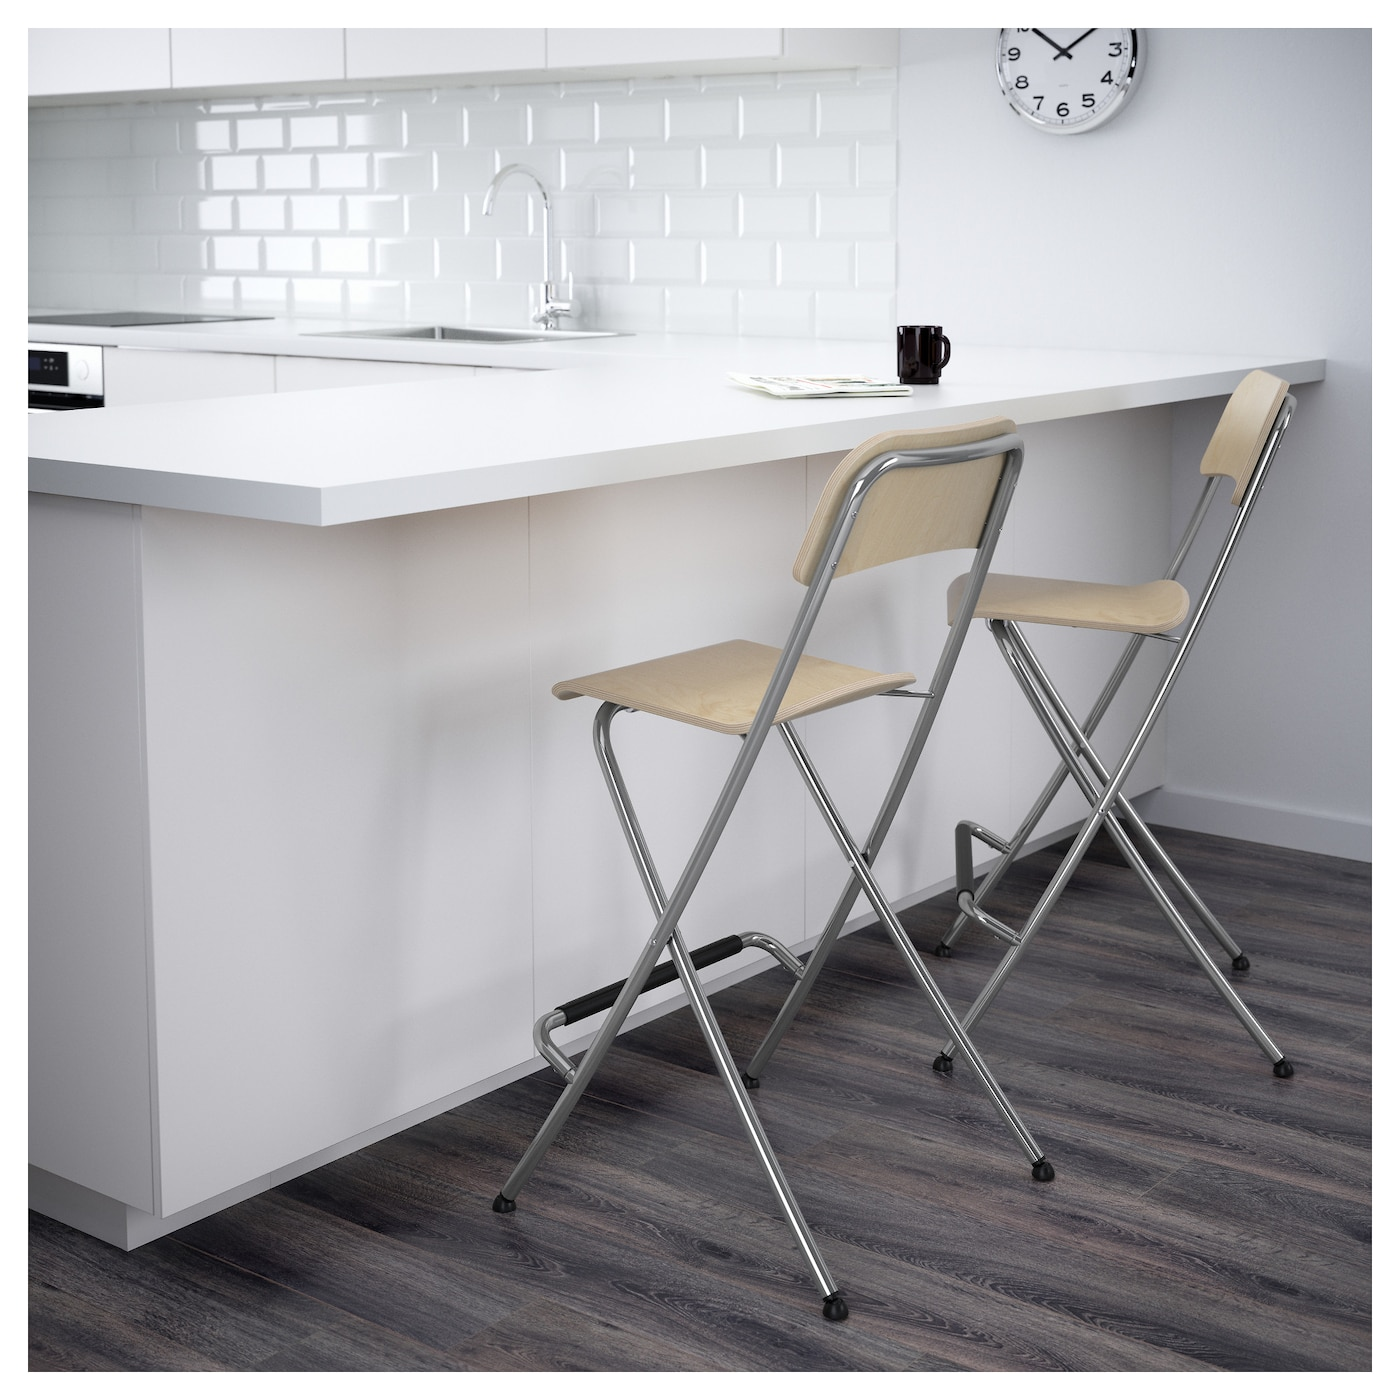 Marvelous IKEA FRANKLIN Bar Stool With Backrest, Foldable With Footrest For Relaxed  Sitting Posture.